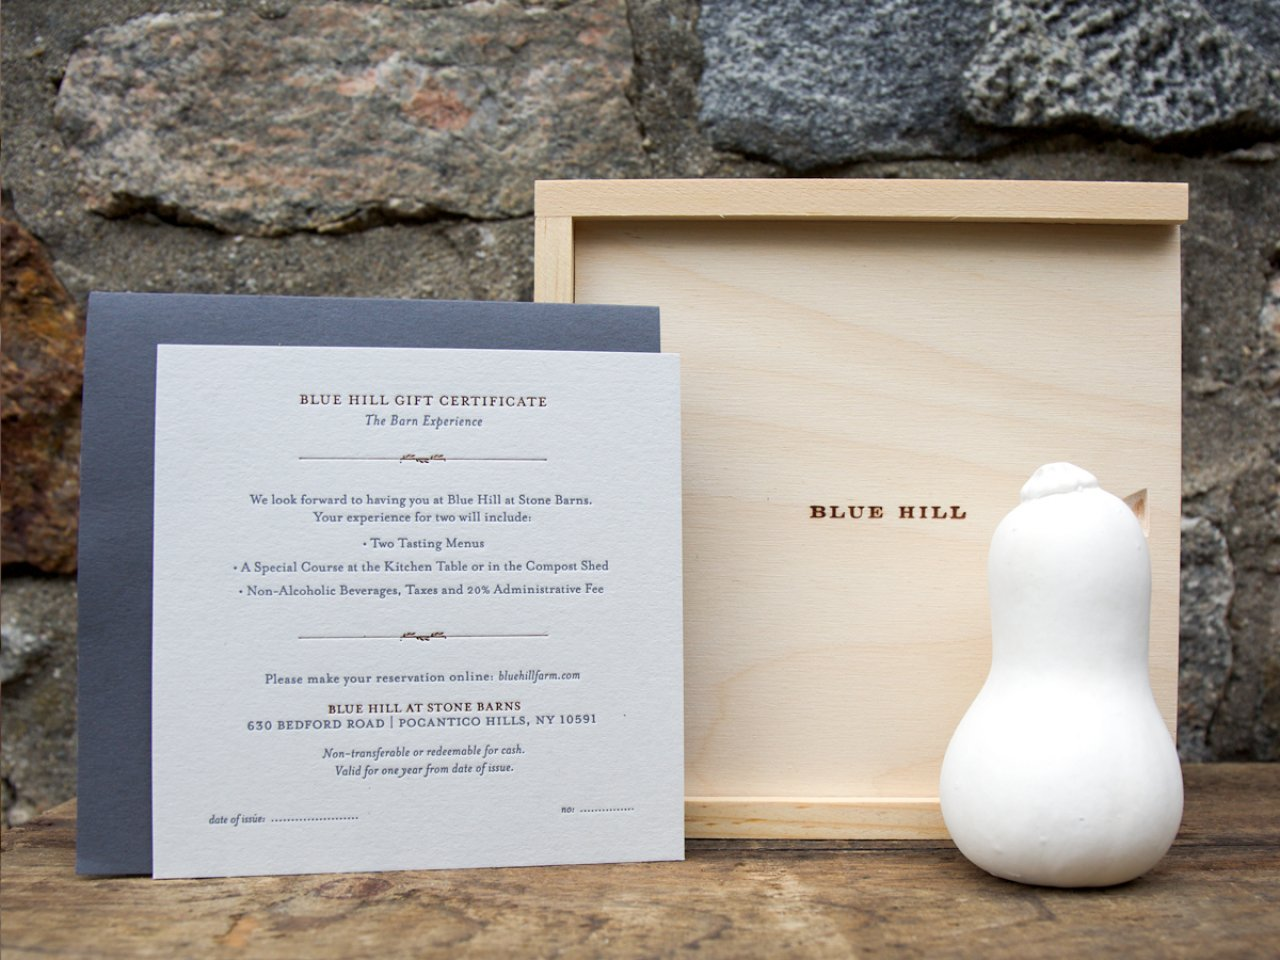 Blue Hill at Stone Barns Curated Experience Certificates (range from $688 to $1,258)